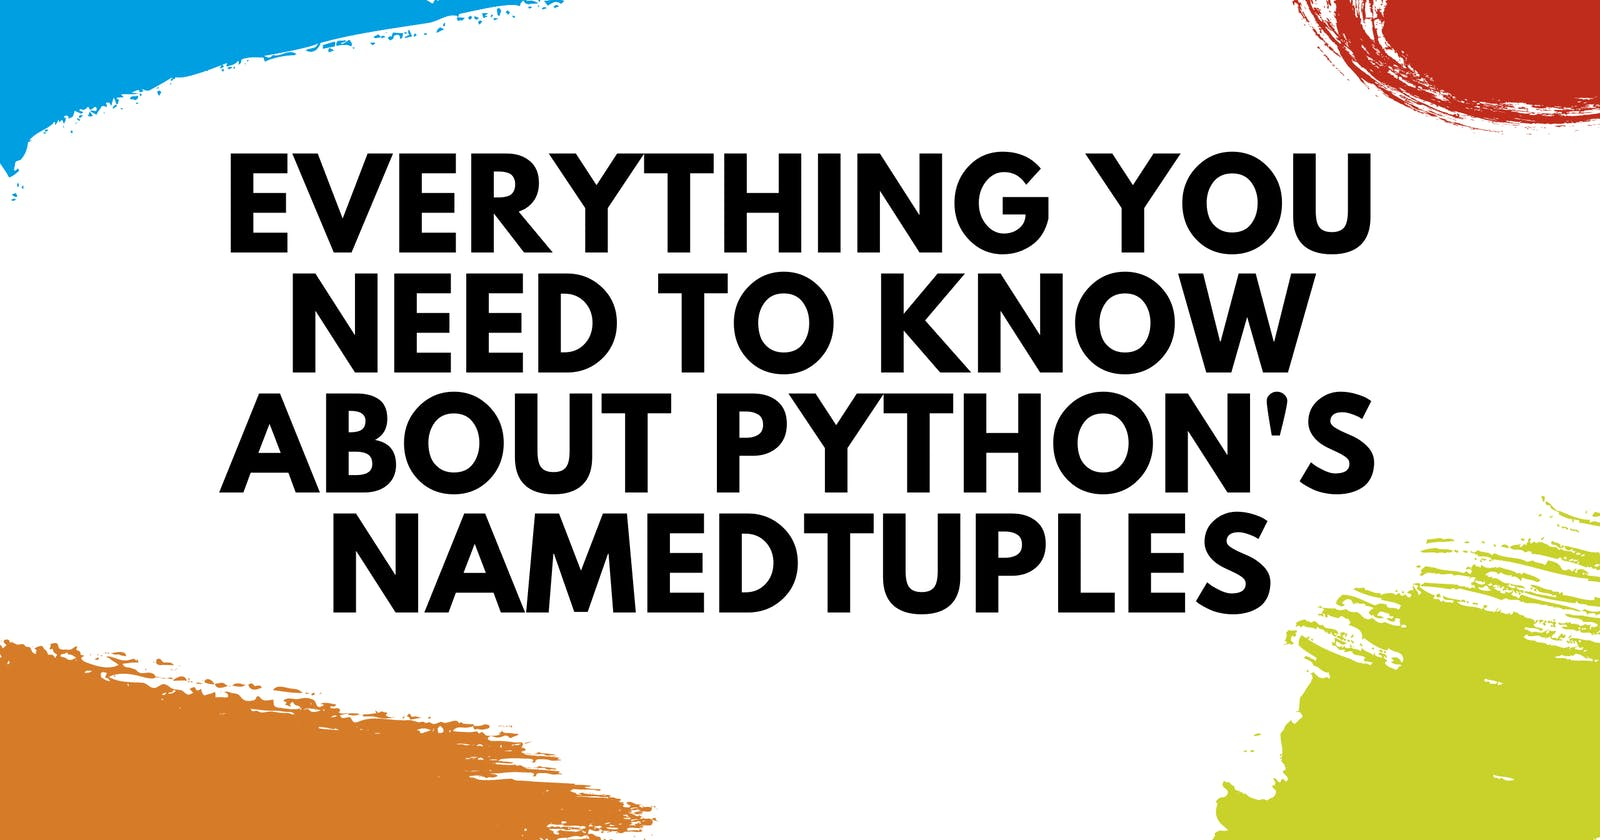 Everything You Need to Know About Python's Namedtuples